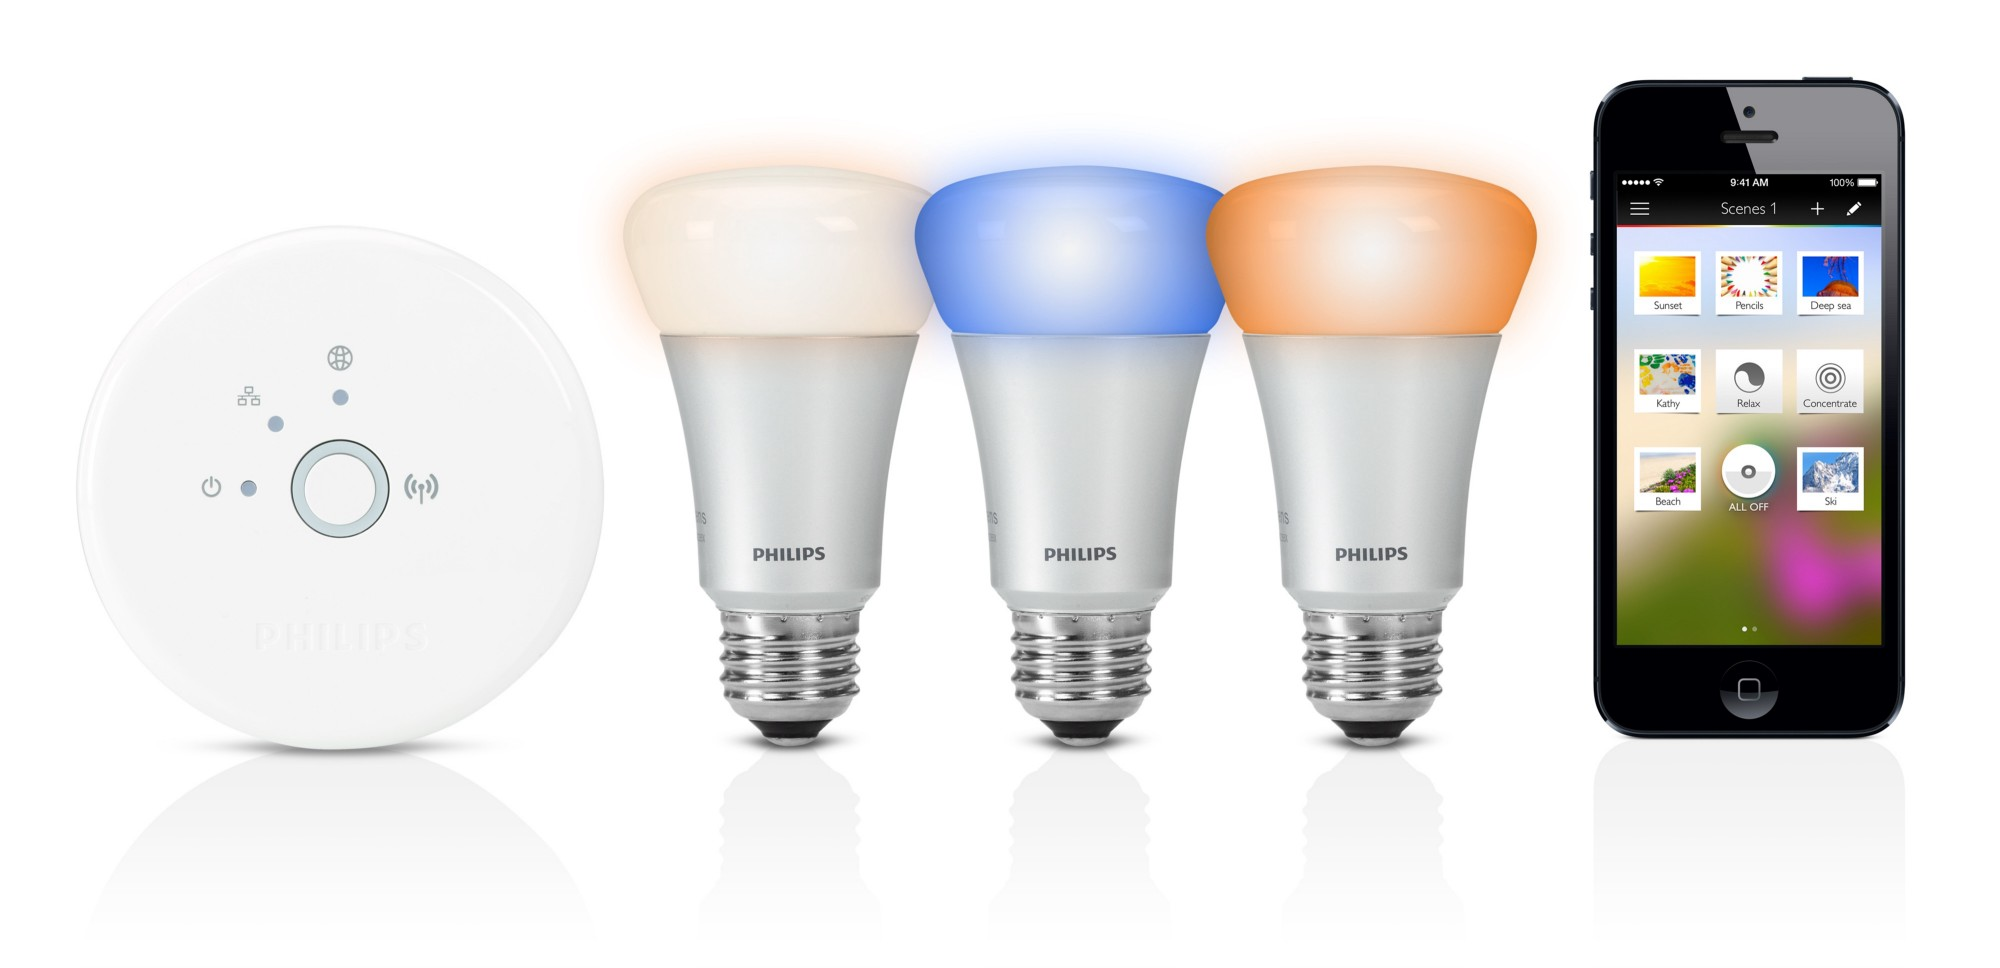 Hue smart lighting system by Philips.